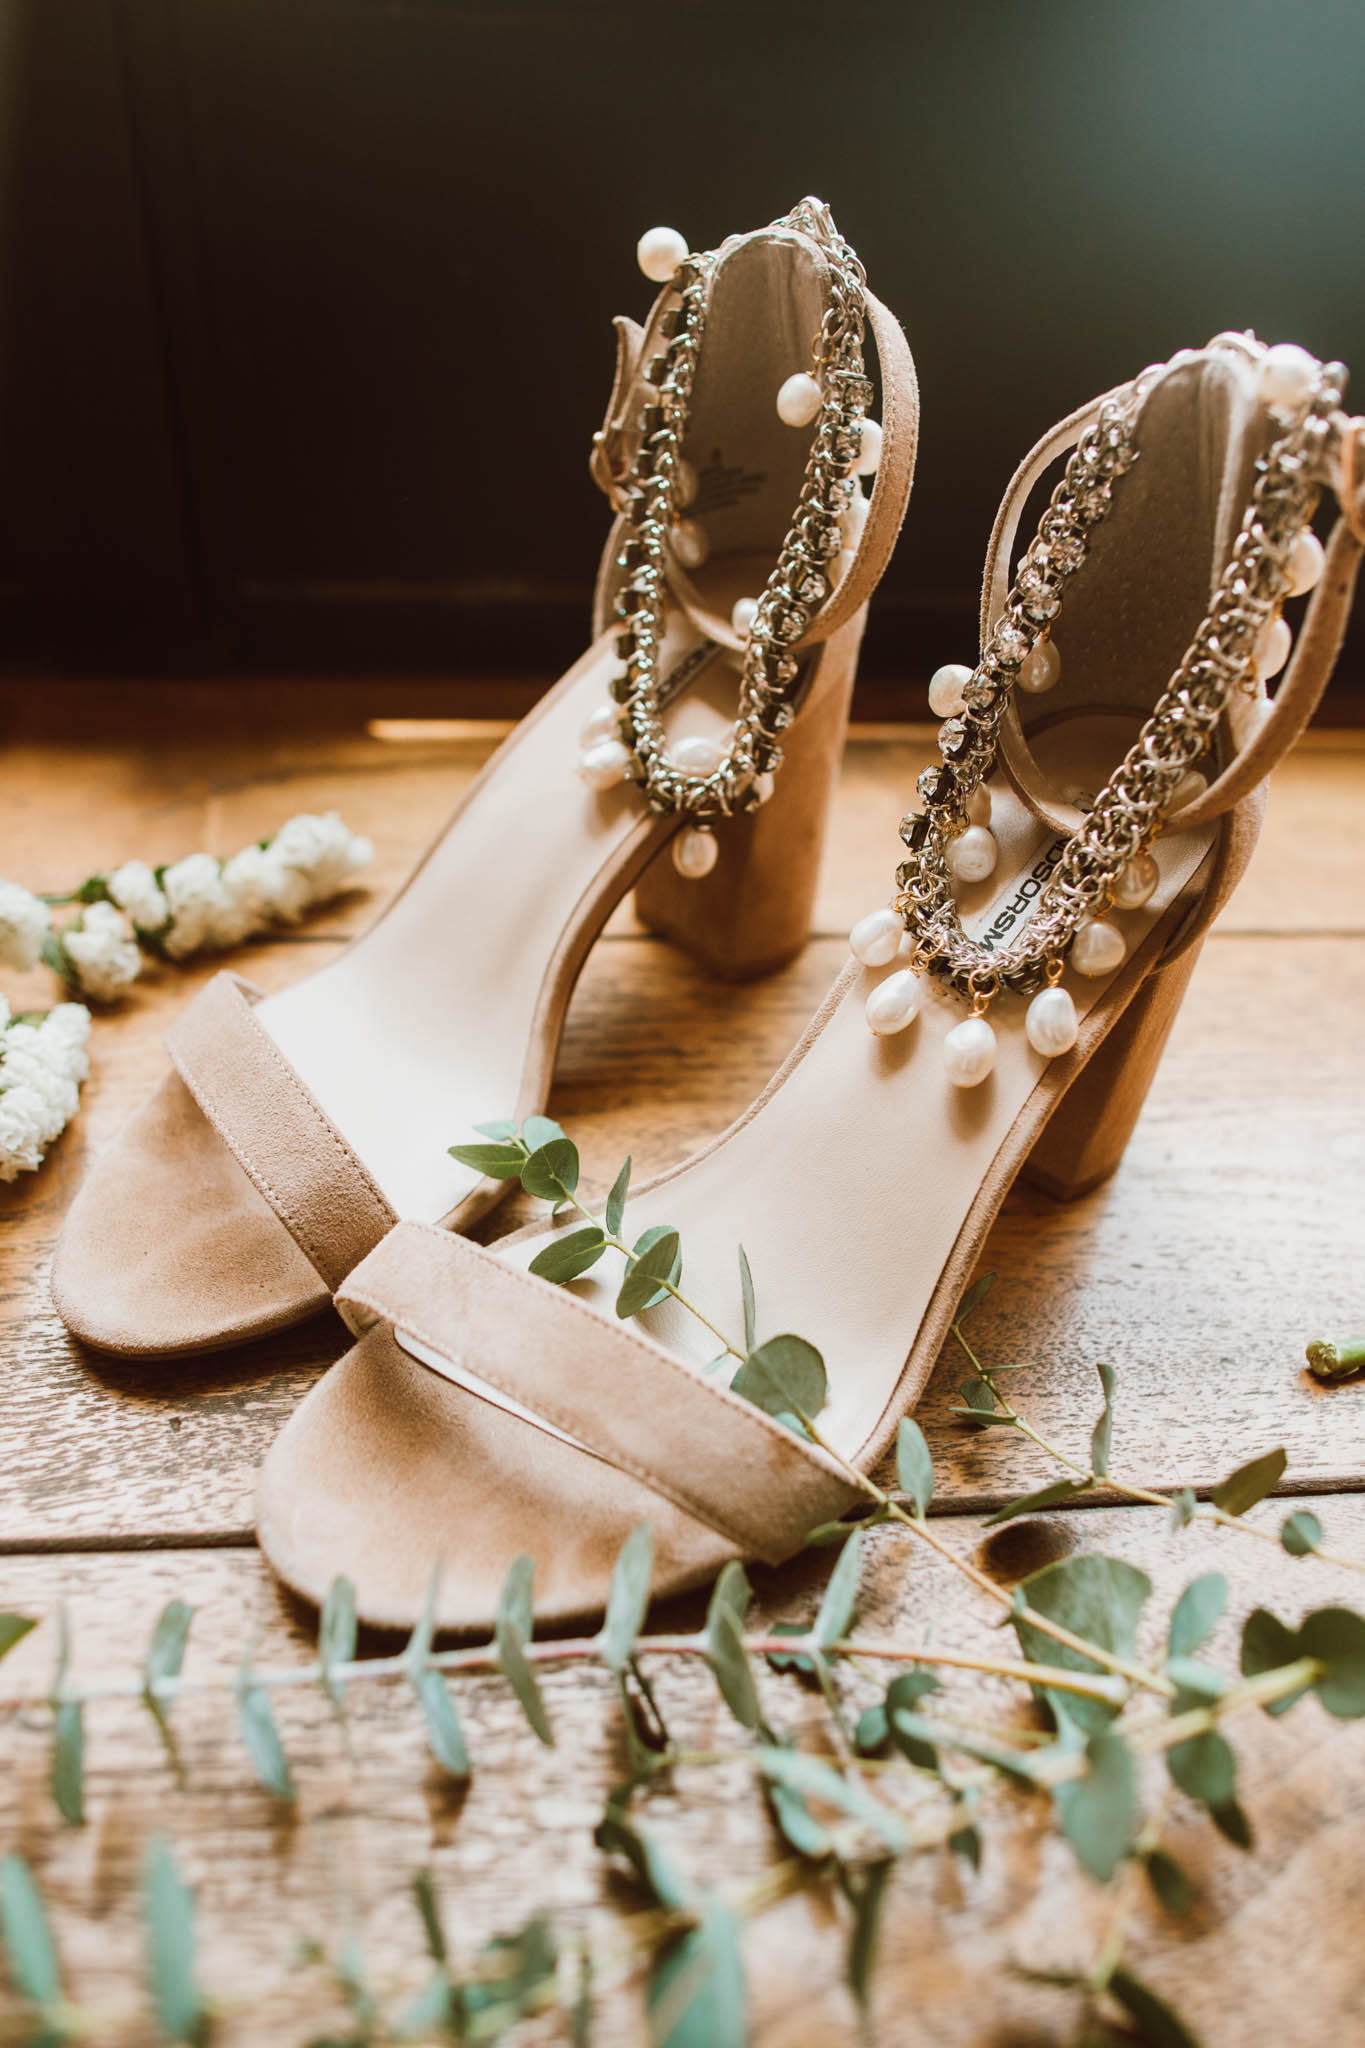 BridesBohemianStyledWeddingShoes-7.jpg